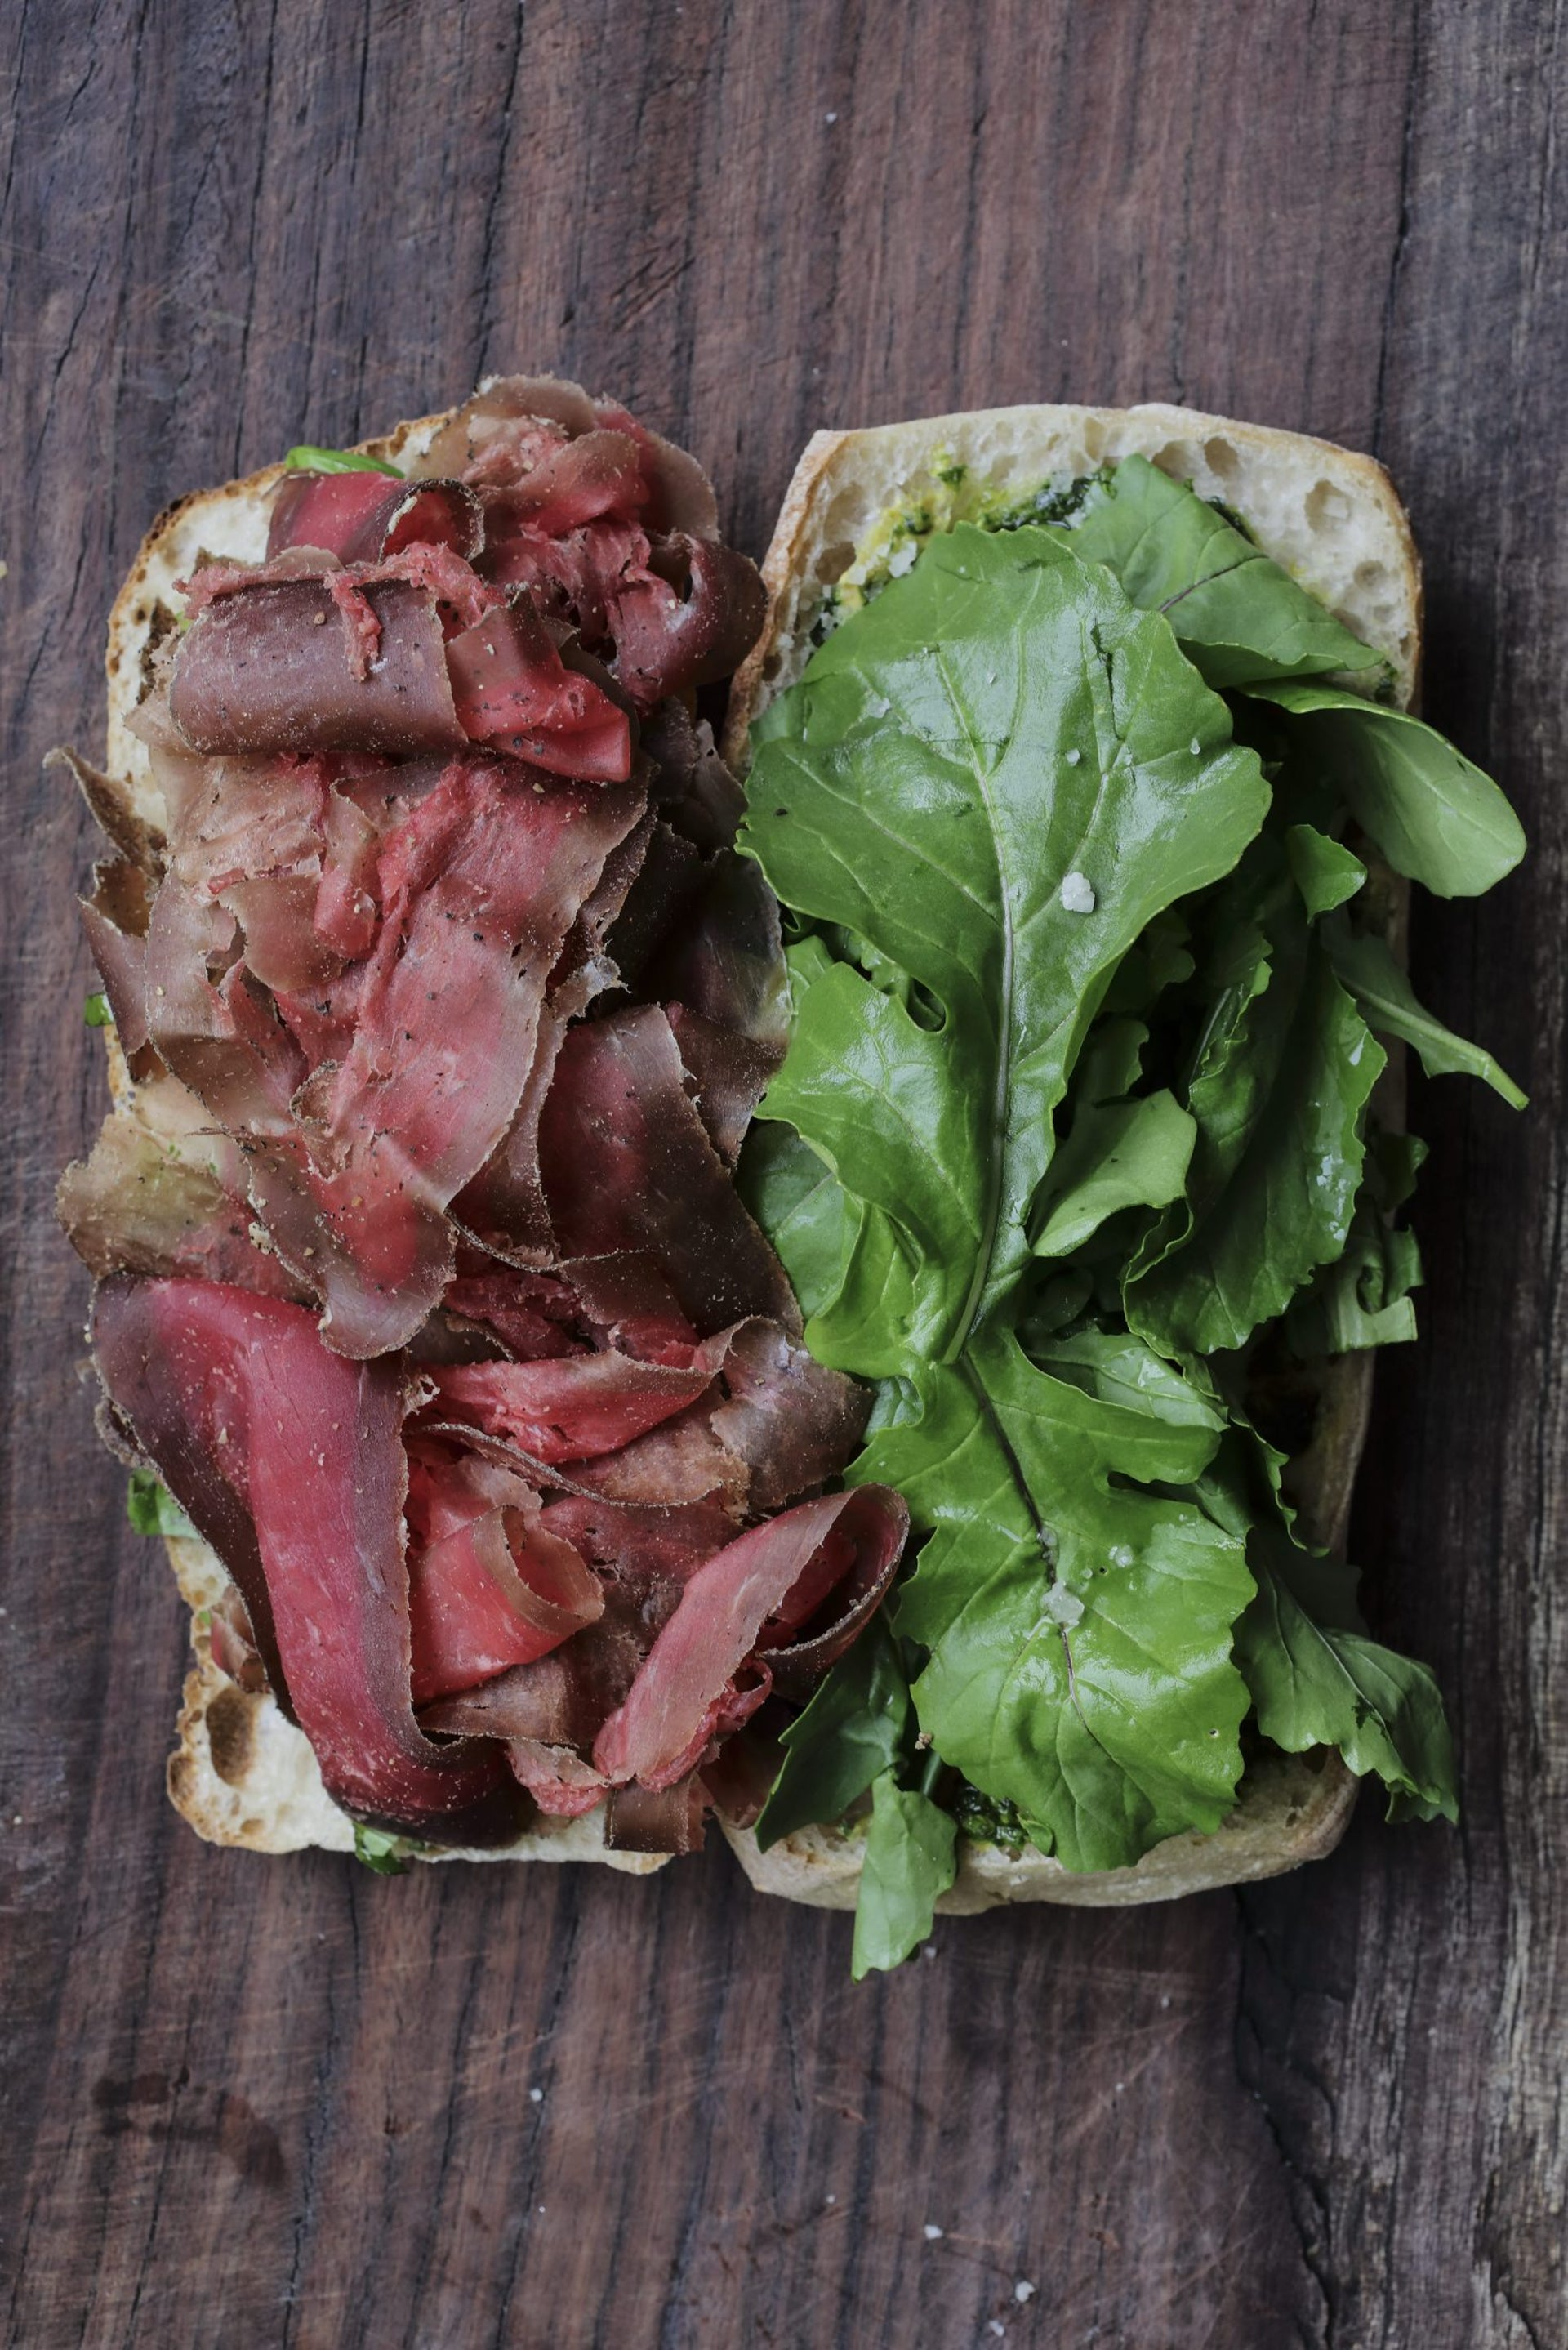 A bresaola sandwich at Tootsie Kitchen Delicatessan.